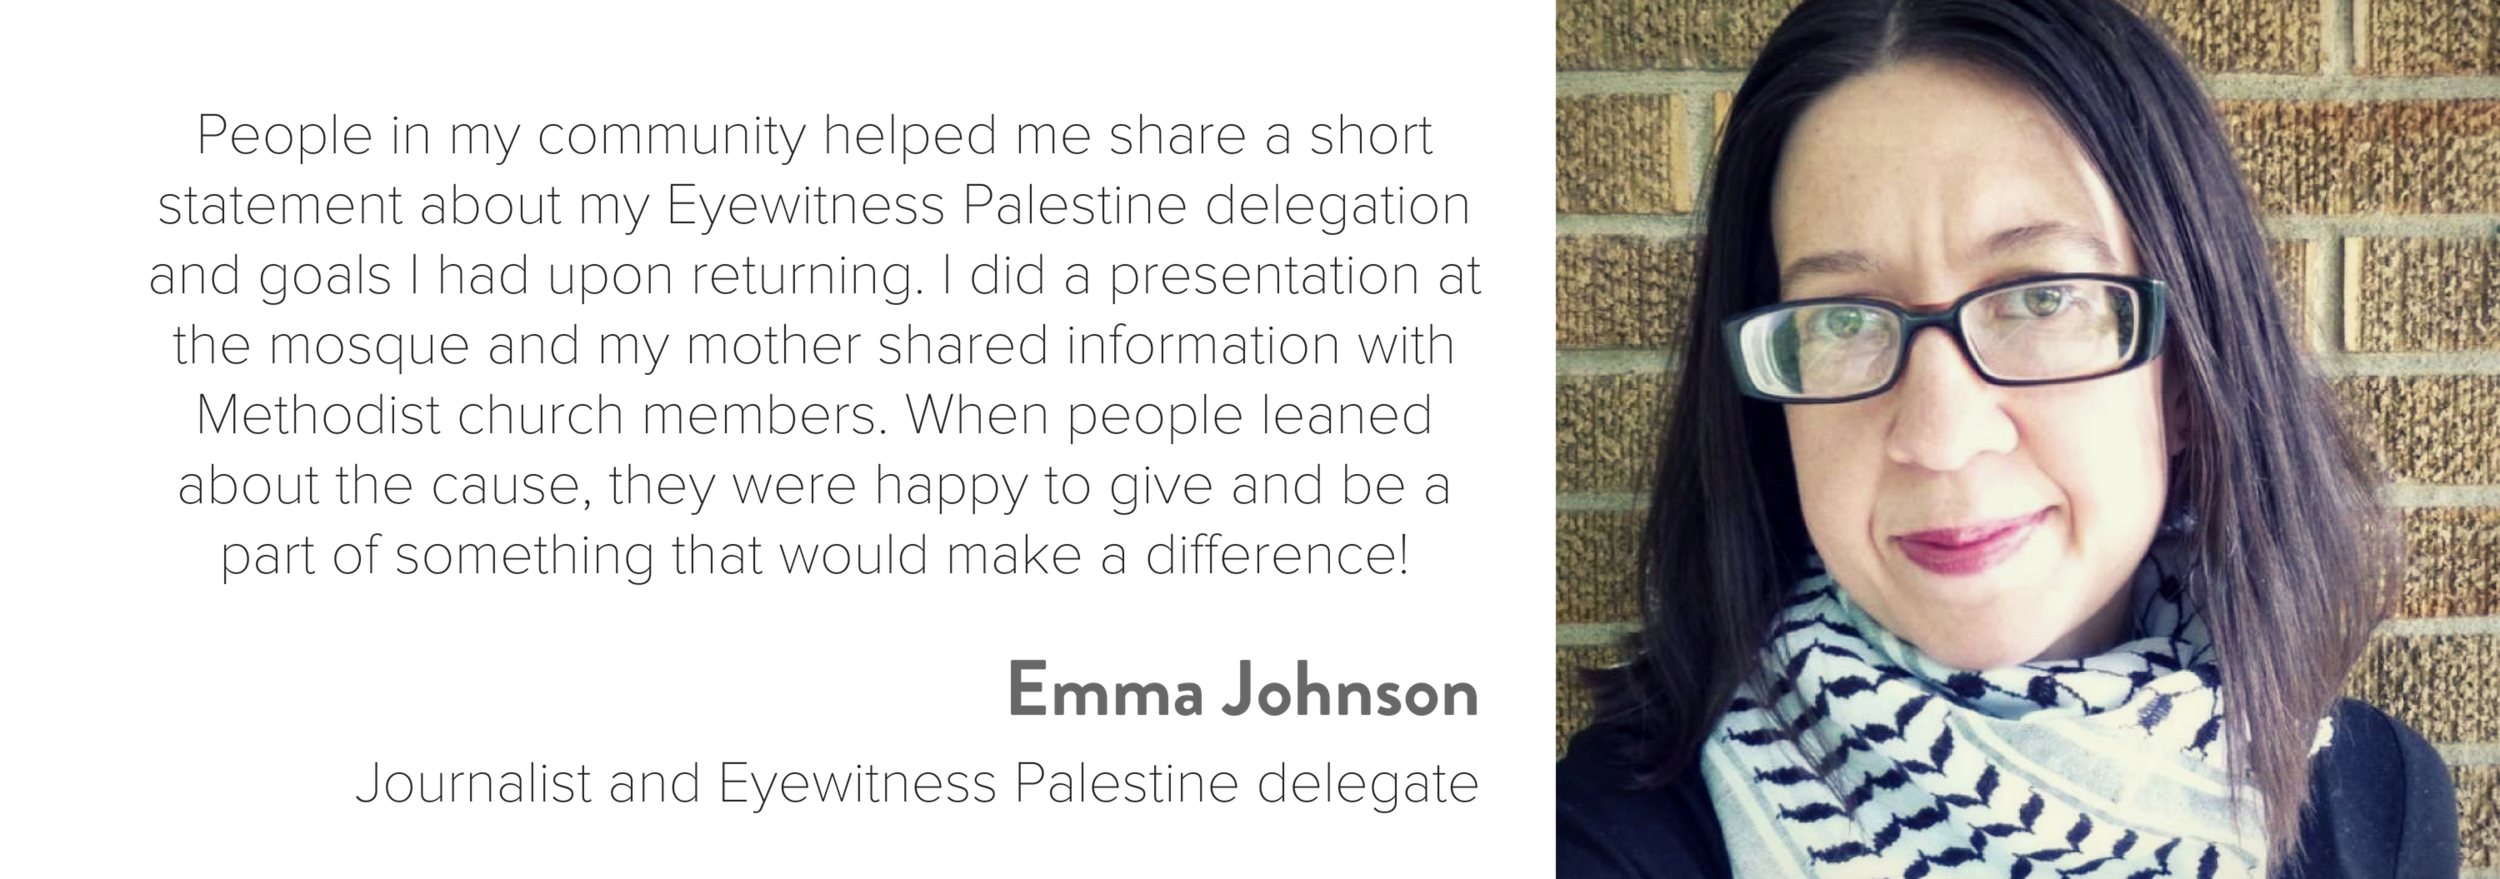 Emma Johnson - Funding Trip Testimonials for Website.png